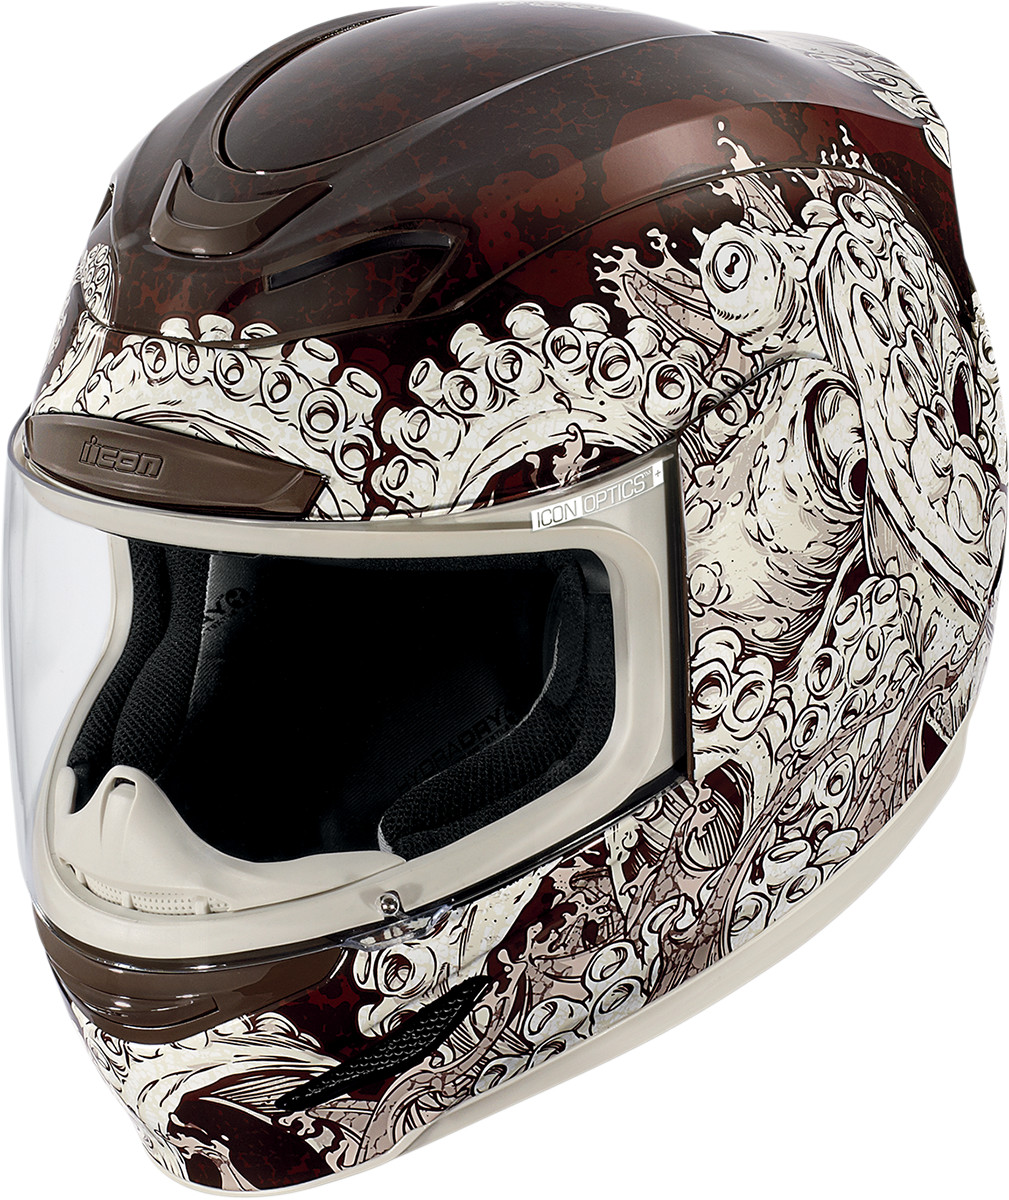 Icon Airmada Colossal Full Face Motorcycle Helmet